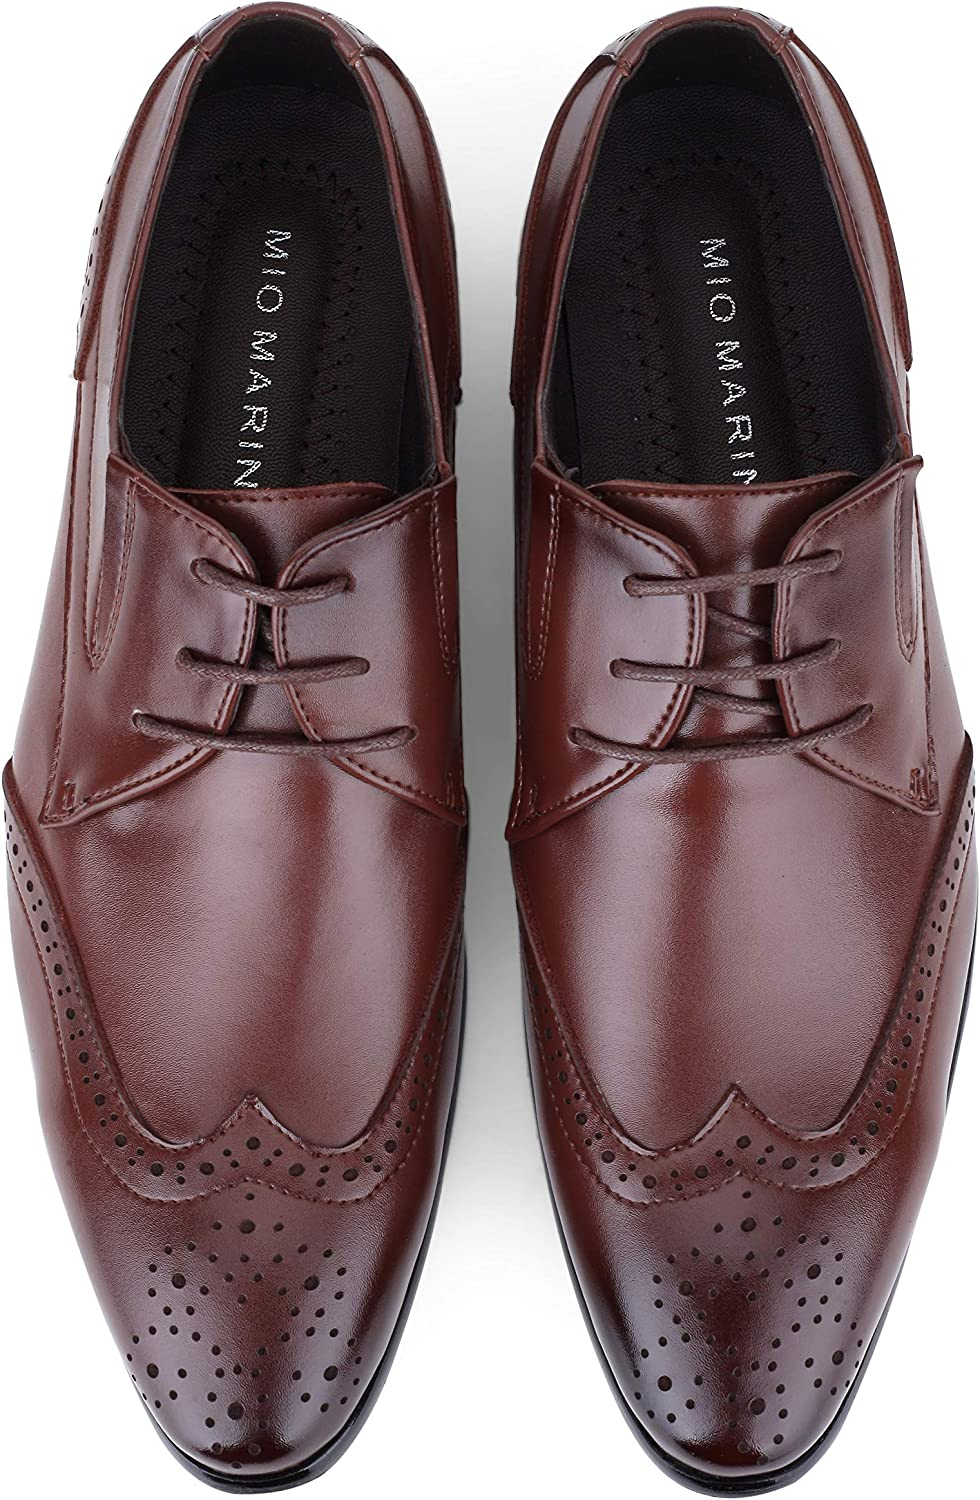 Elegdy Business Formal Oxford for Men Genuine Leather Lace up British Style Wedding Dress Pointed Toe Shoes